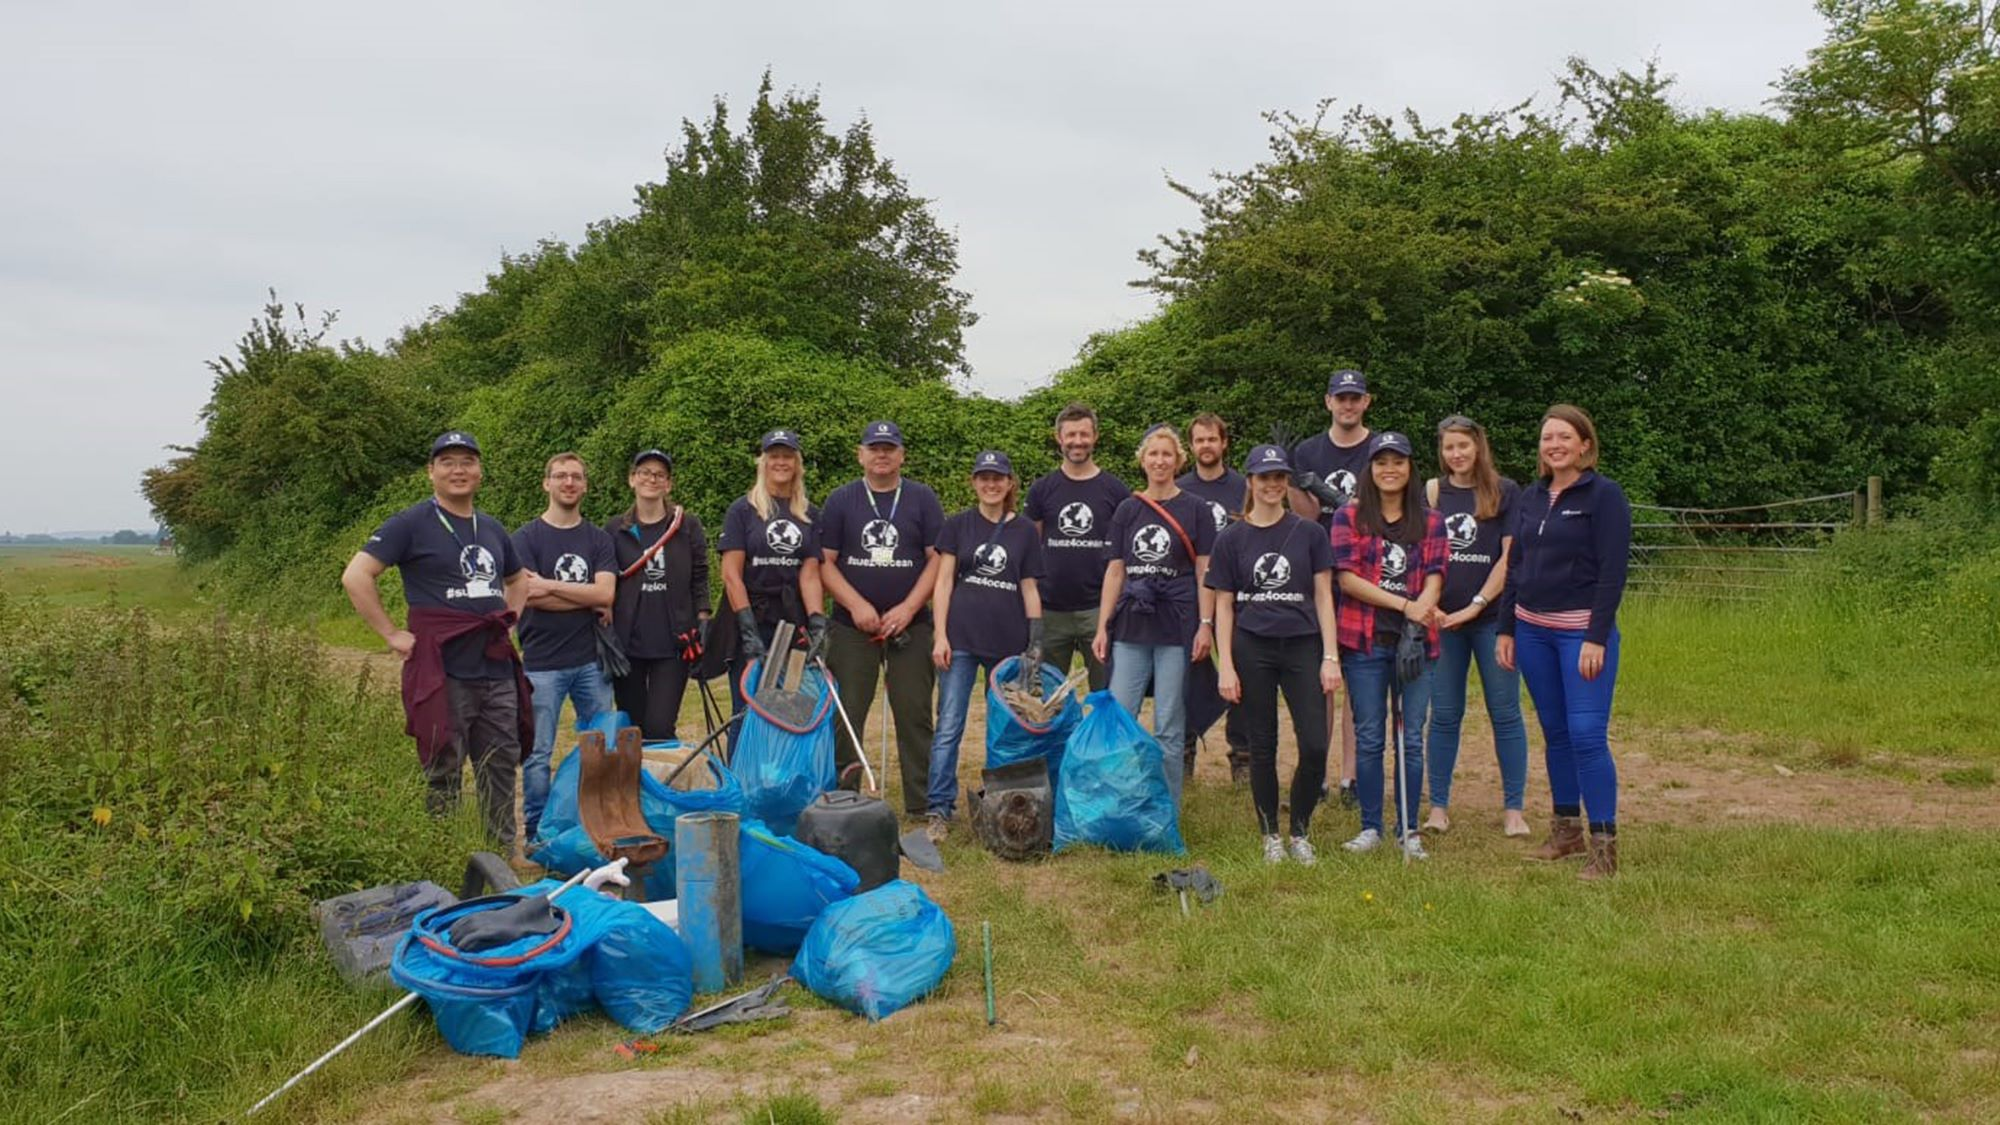 SUEZ employees in the UK join forces to collect waste along the Severn estuary for World Oceans Day